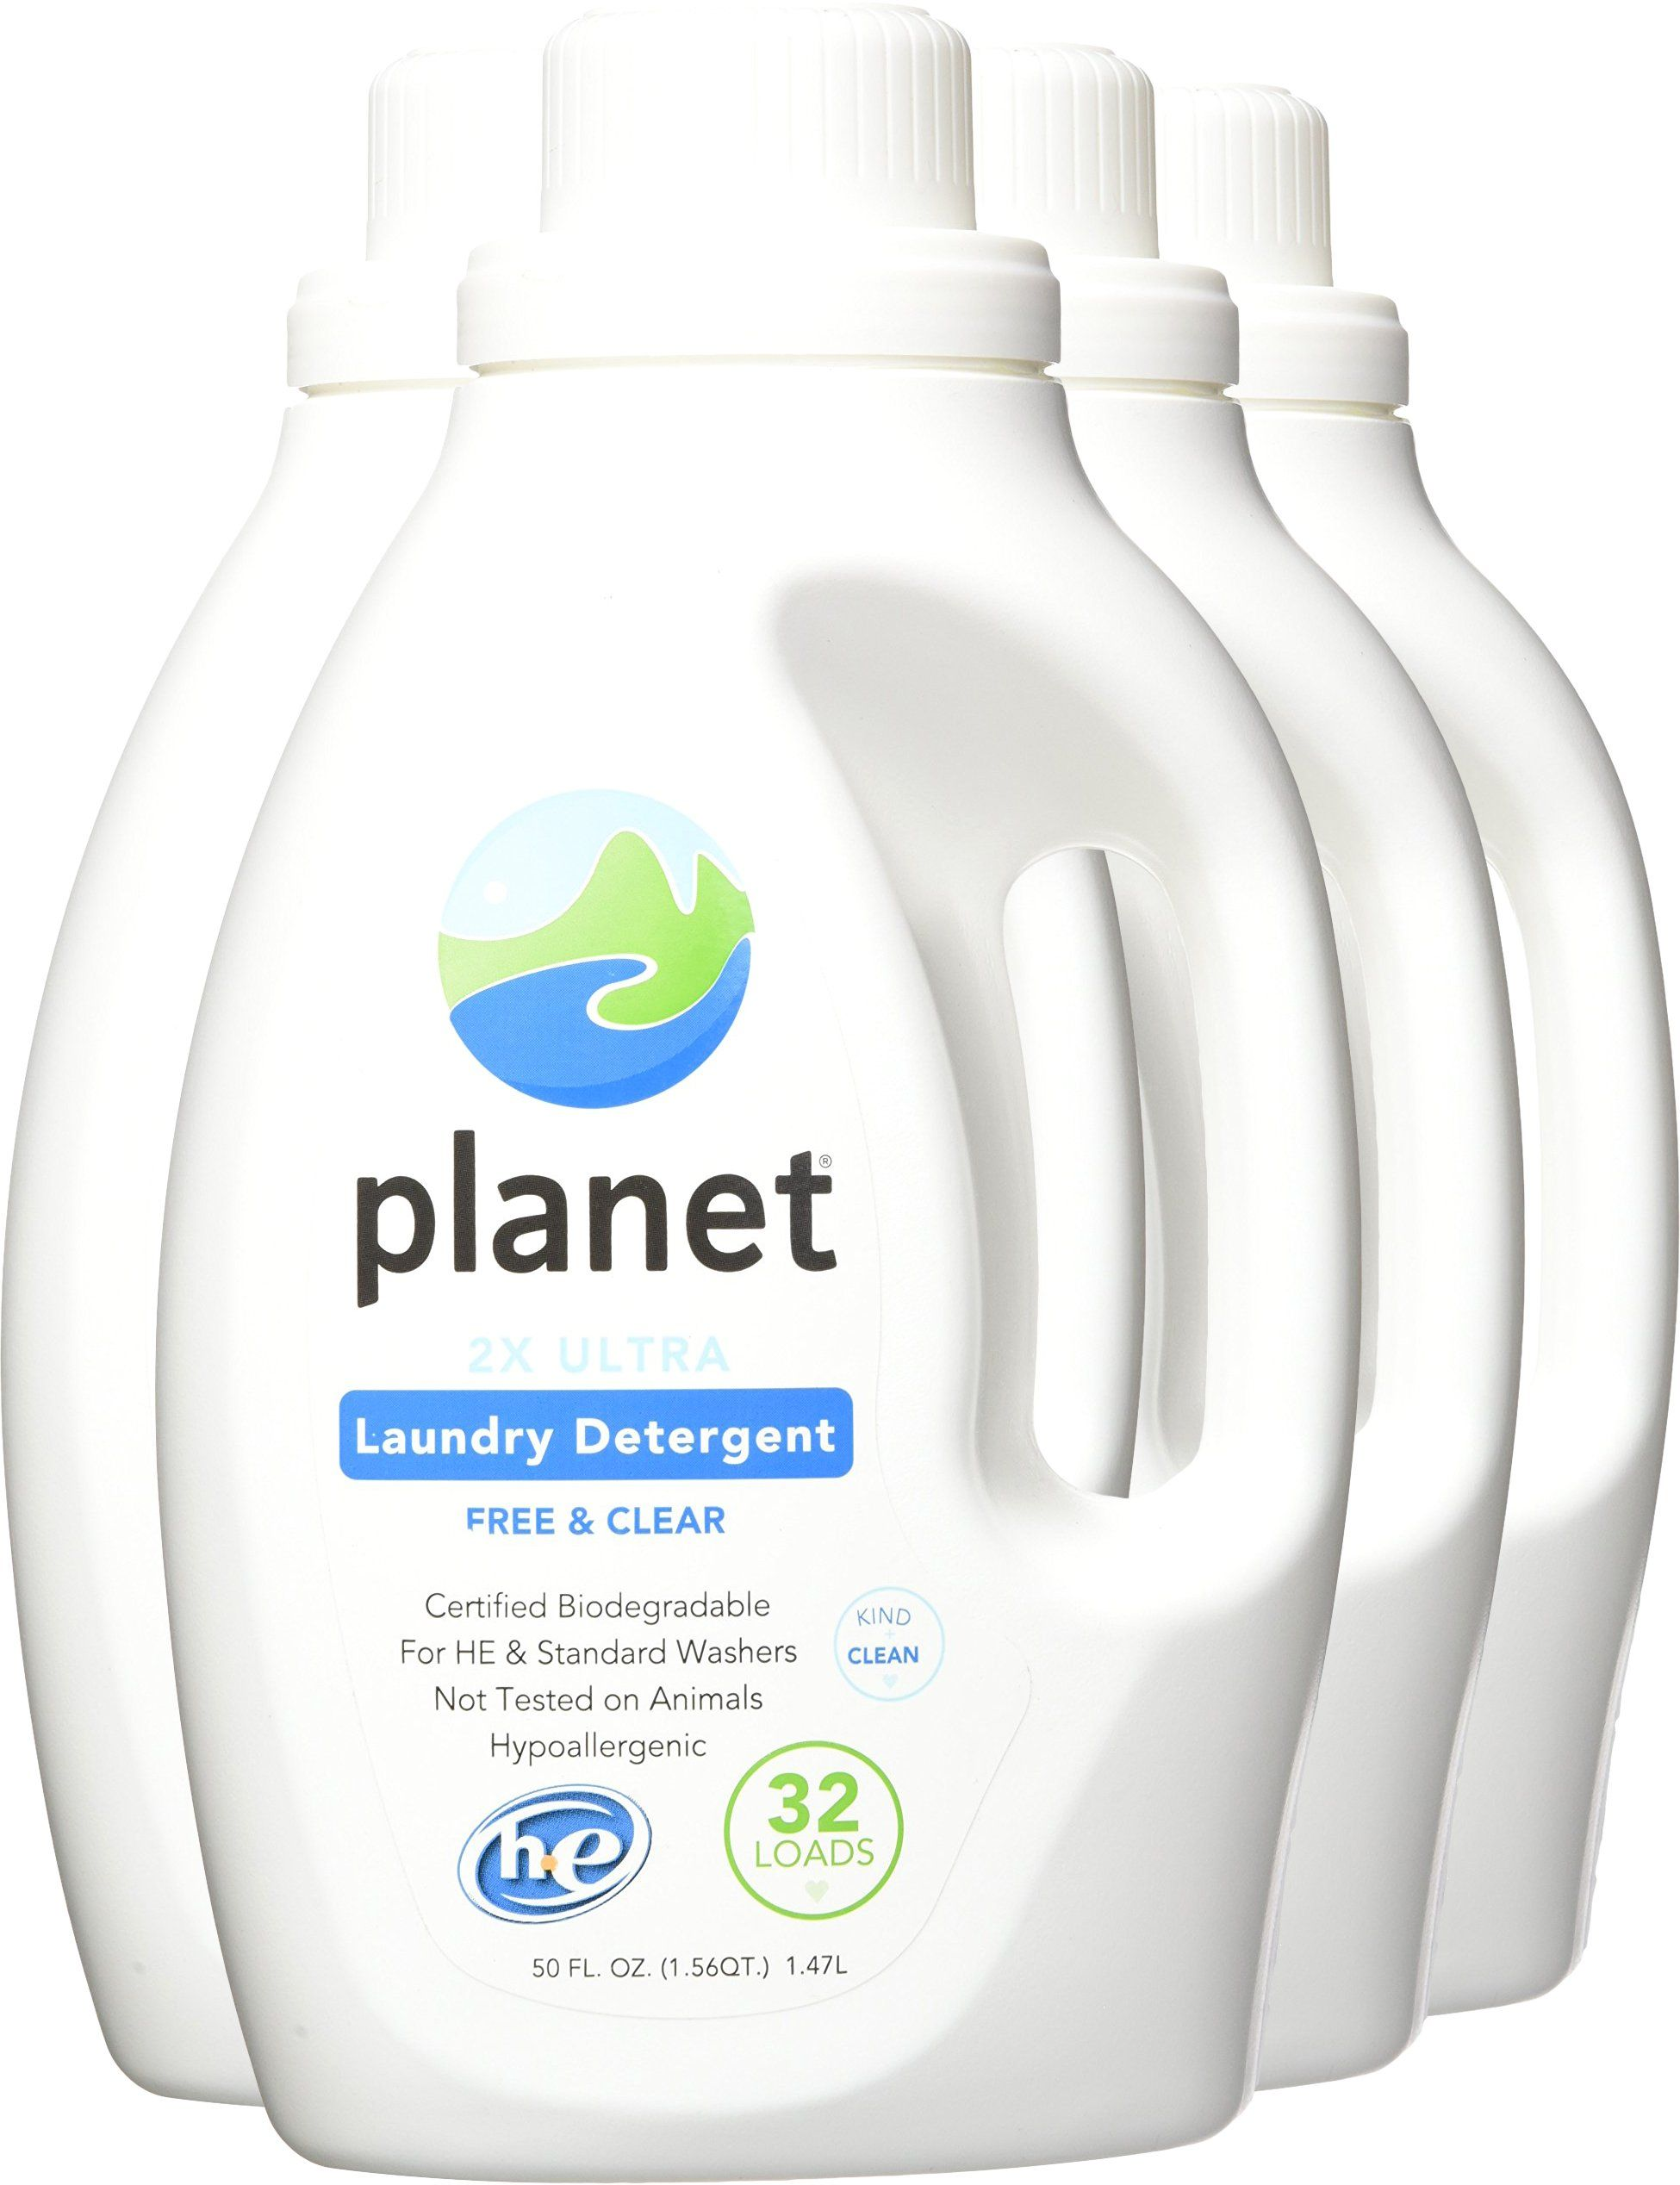 Planet 2x Ultra Laundry Detergent Unscented 50 Fluid Ounce Pack Of